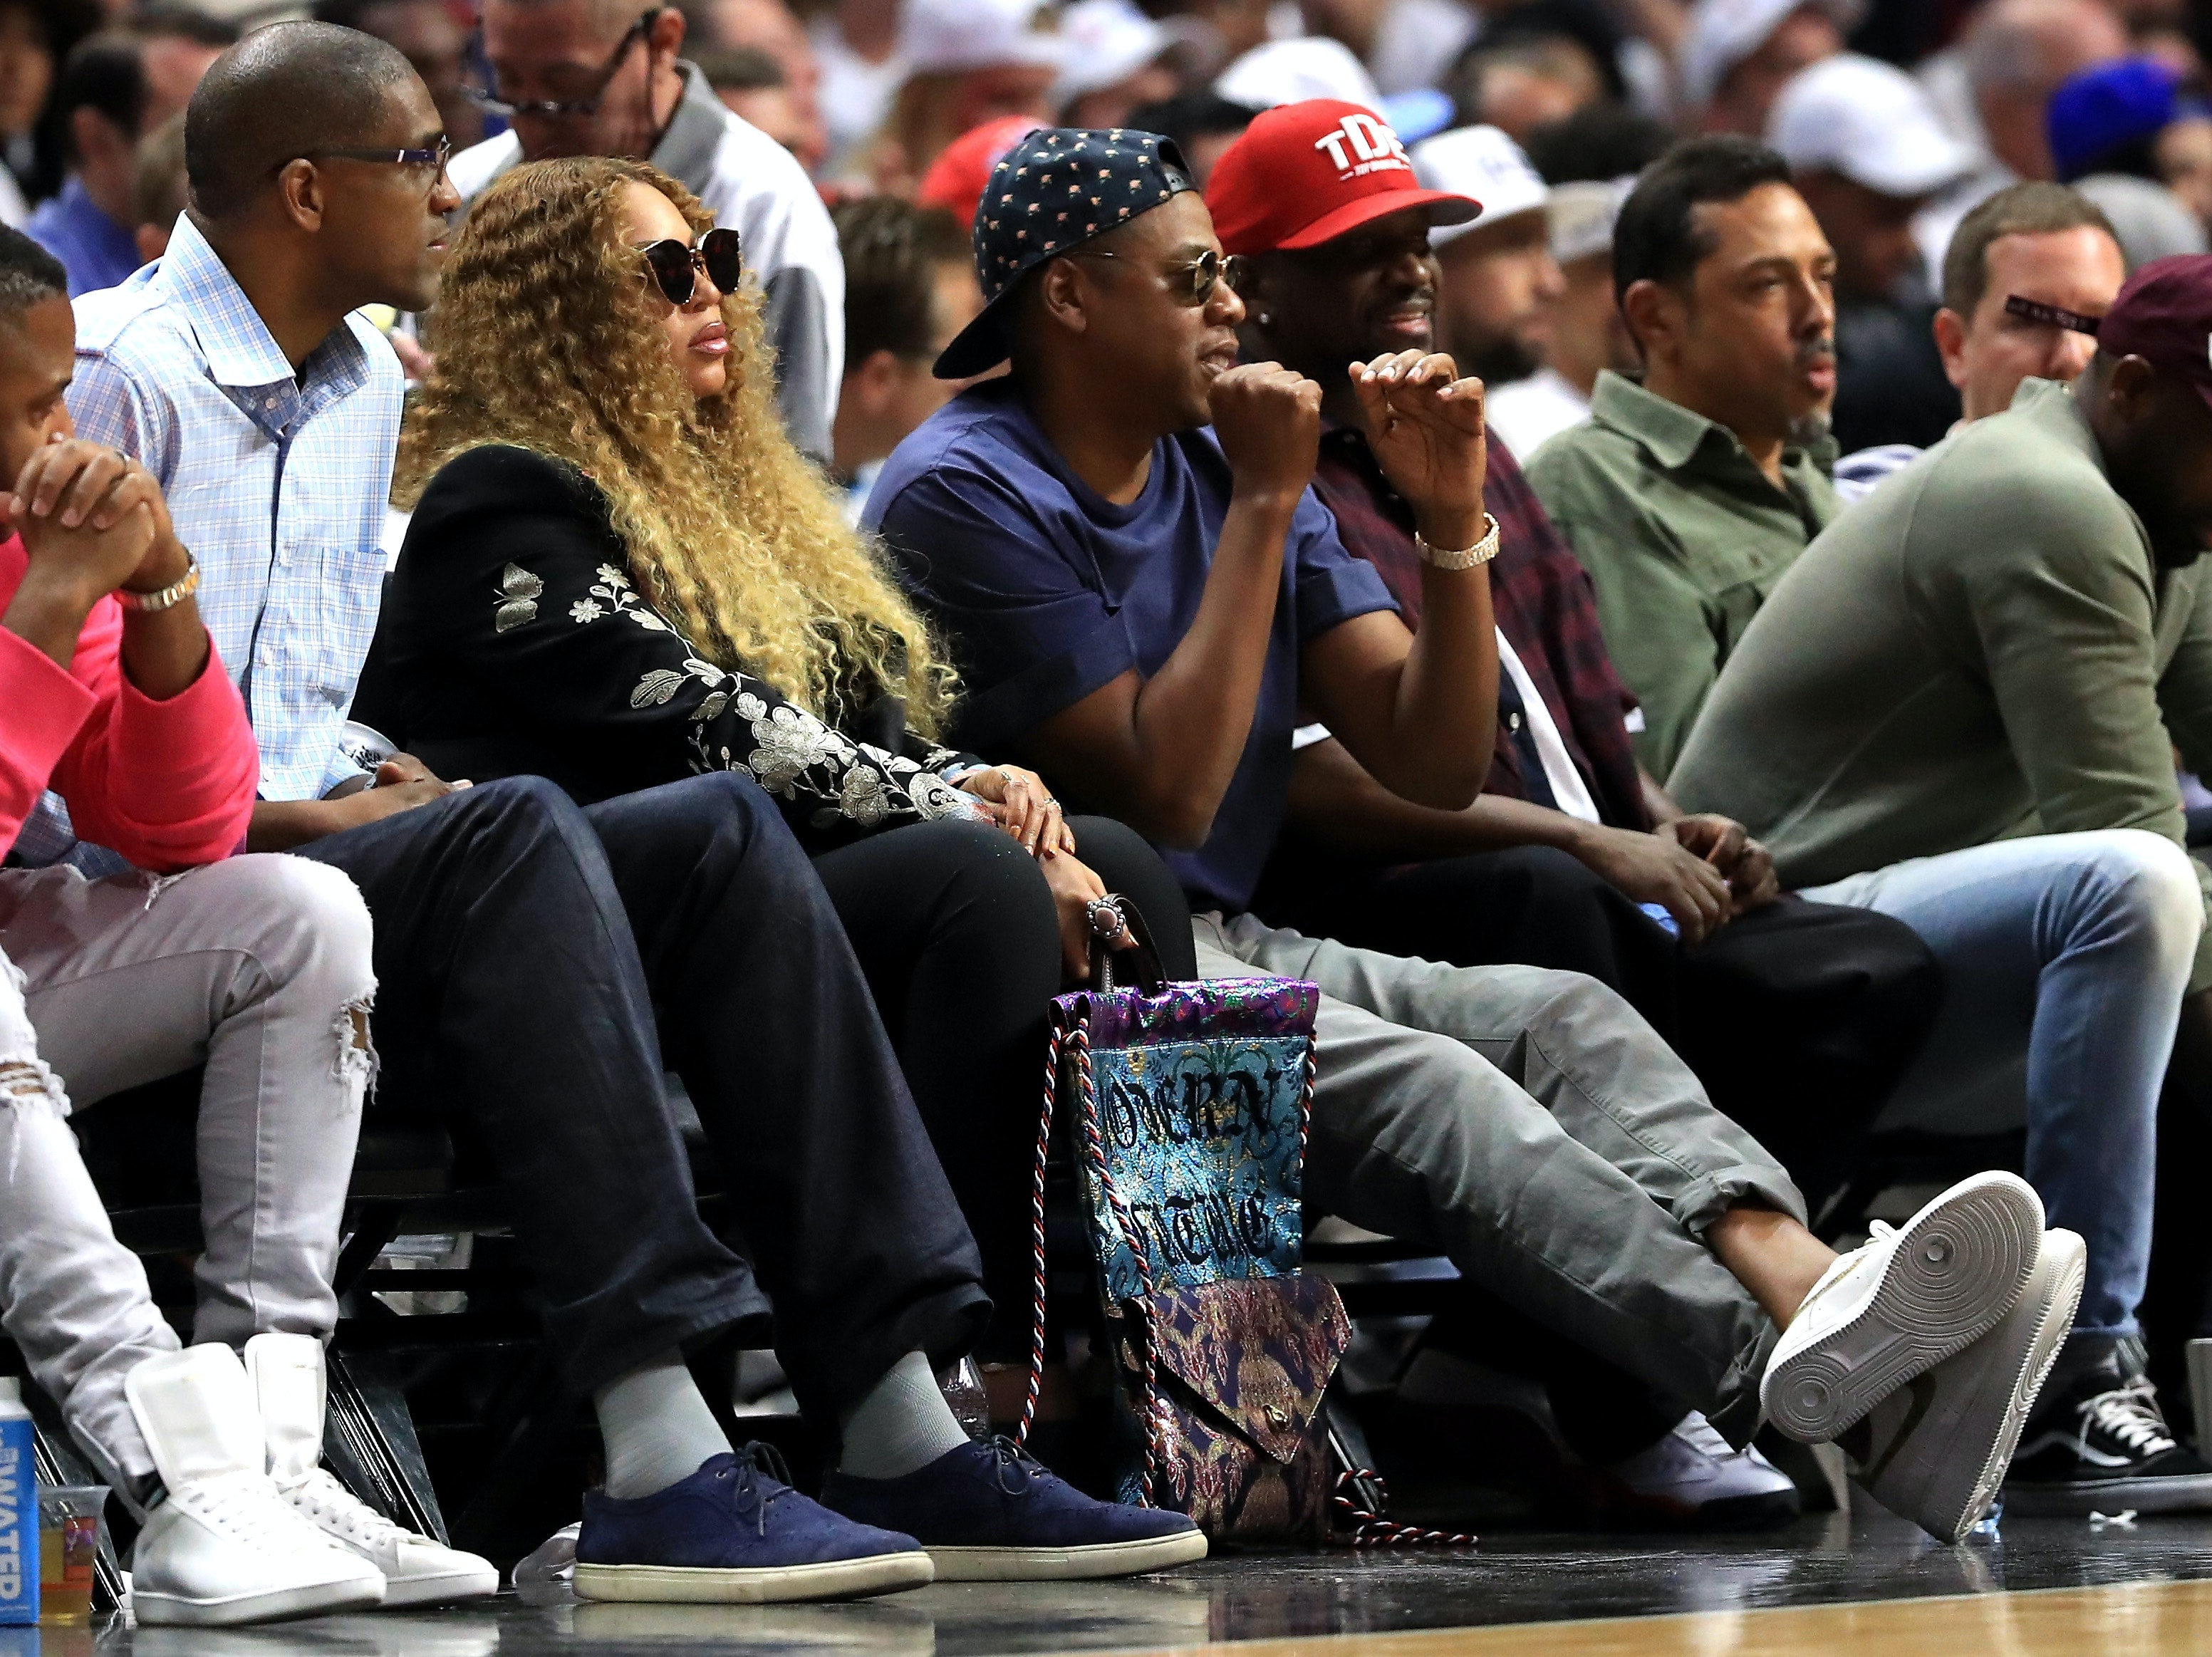 Beyoncé & JAY-Z's Astrological Compatibility Is Unusual, But